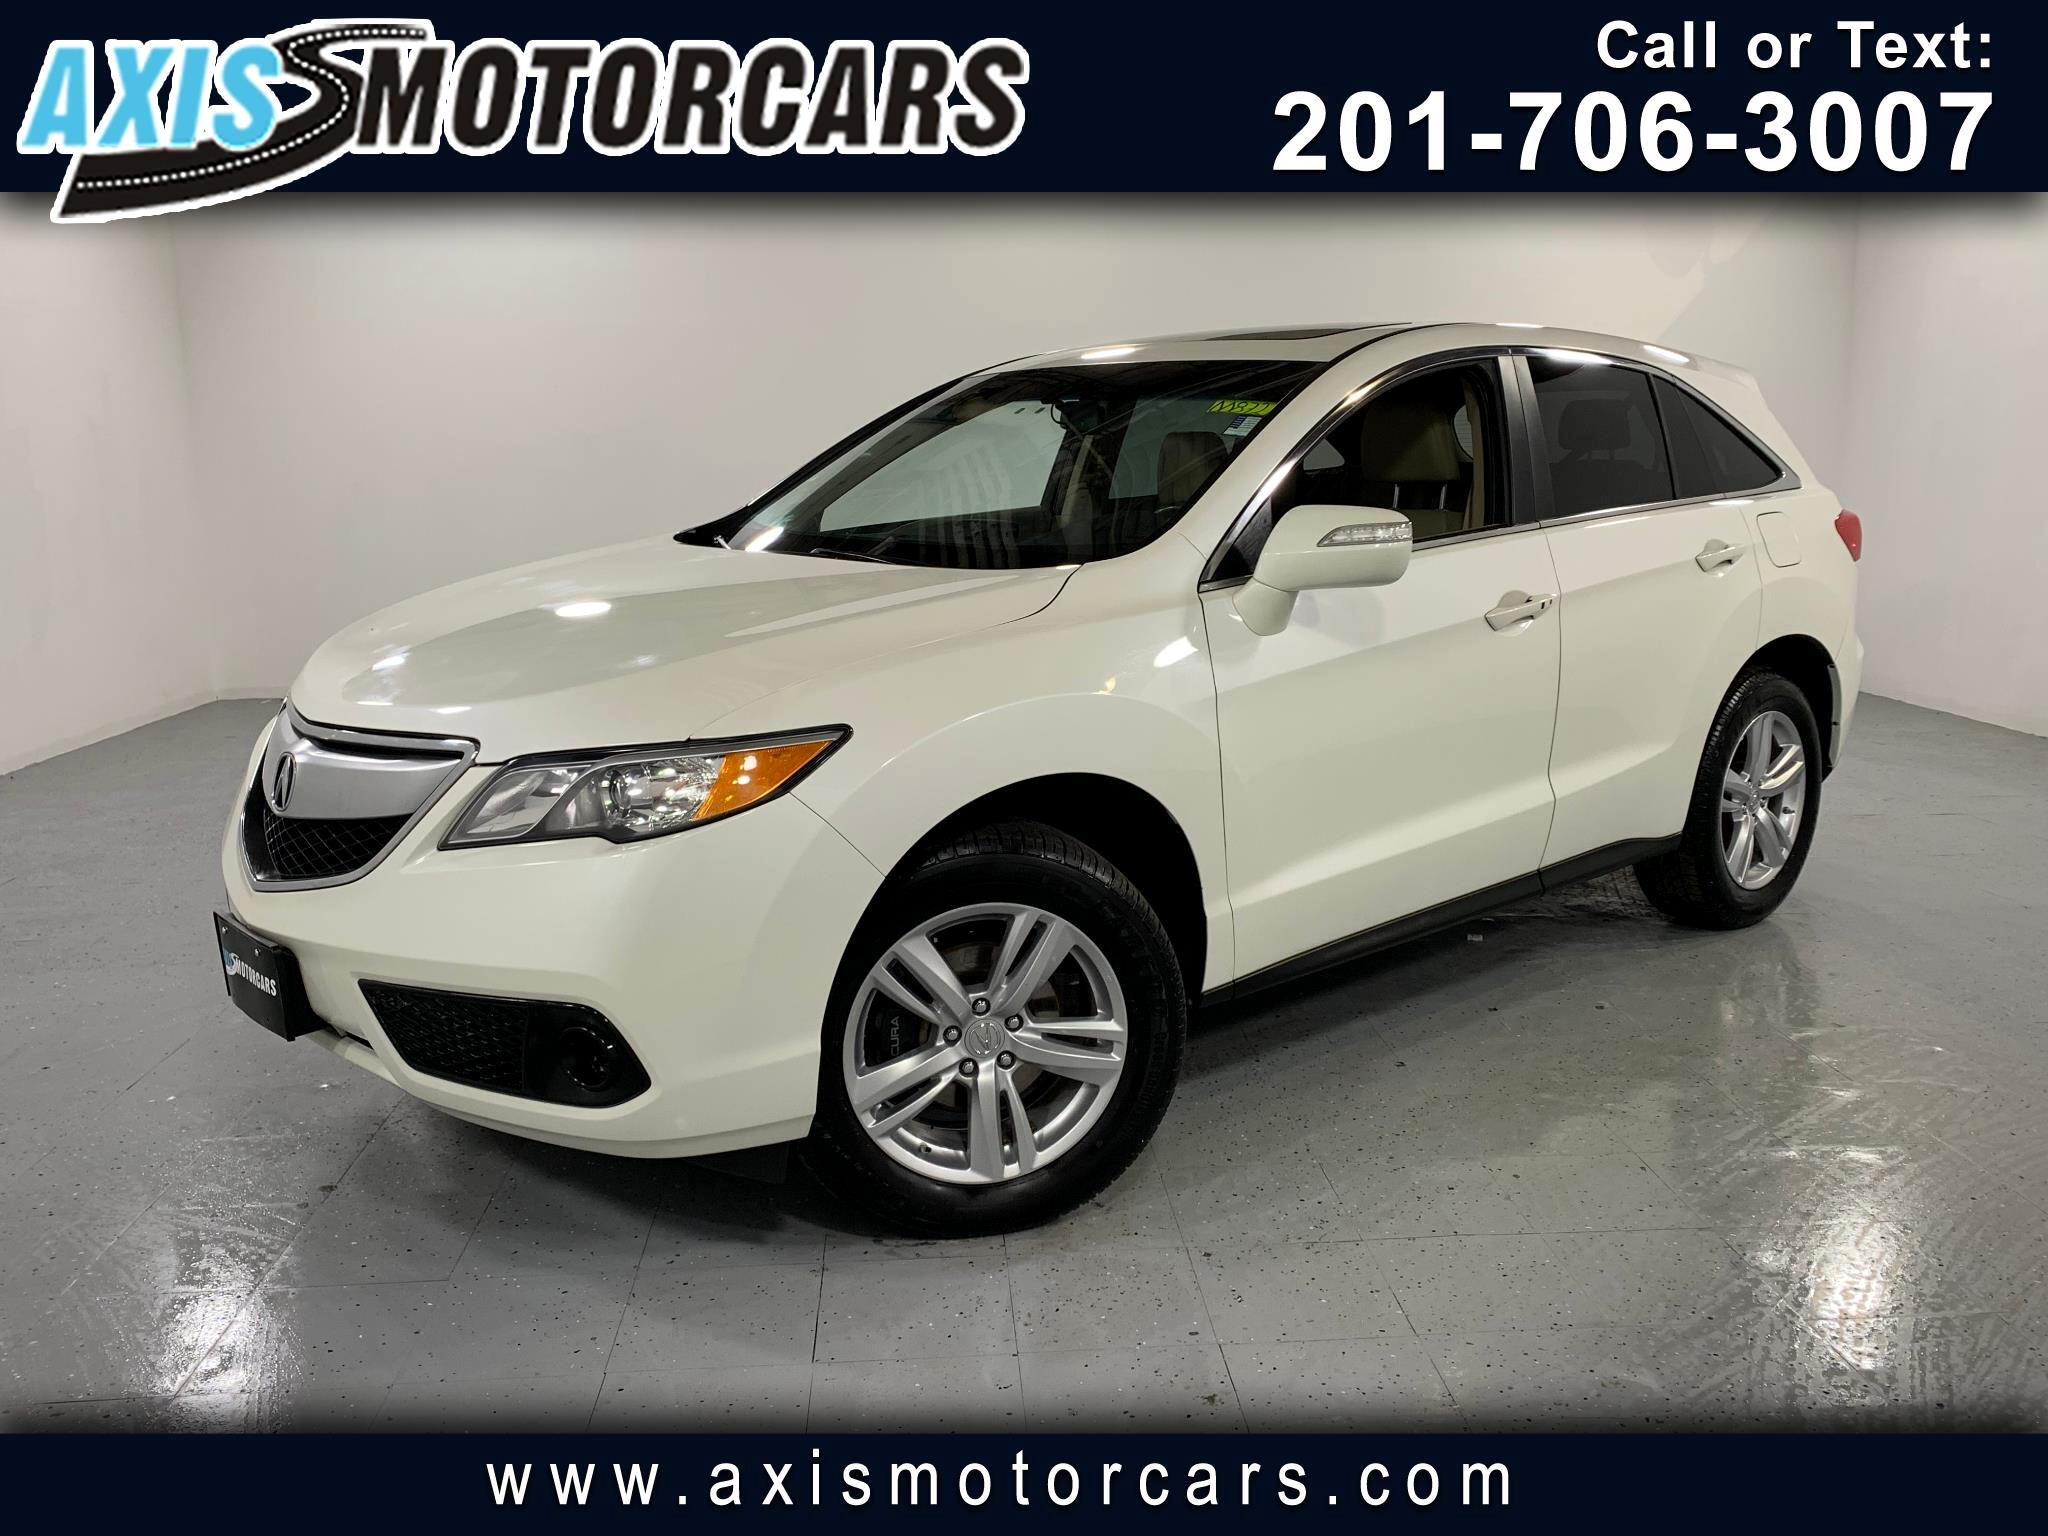 2013 Acura RDX w/Premium Audio System Backup Camera Sunroof